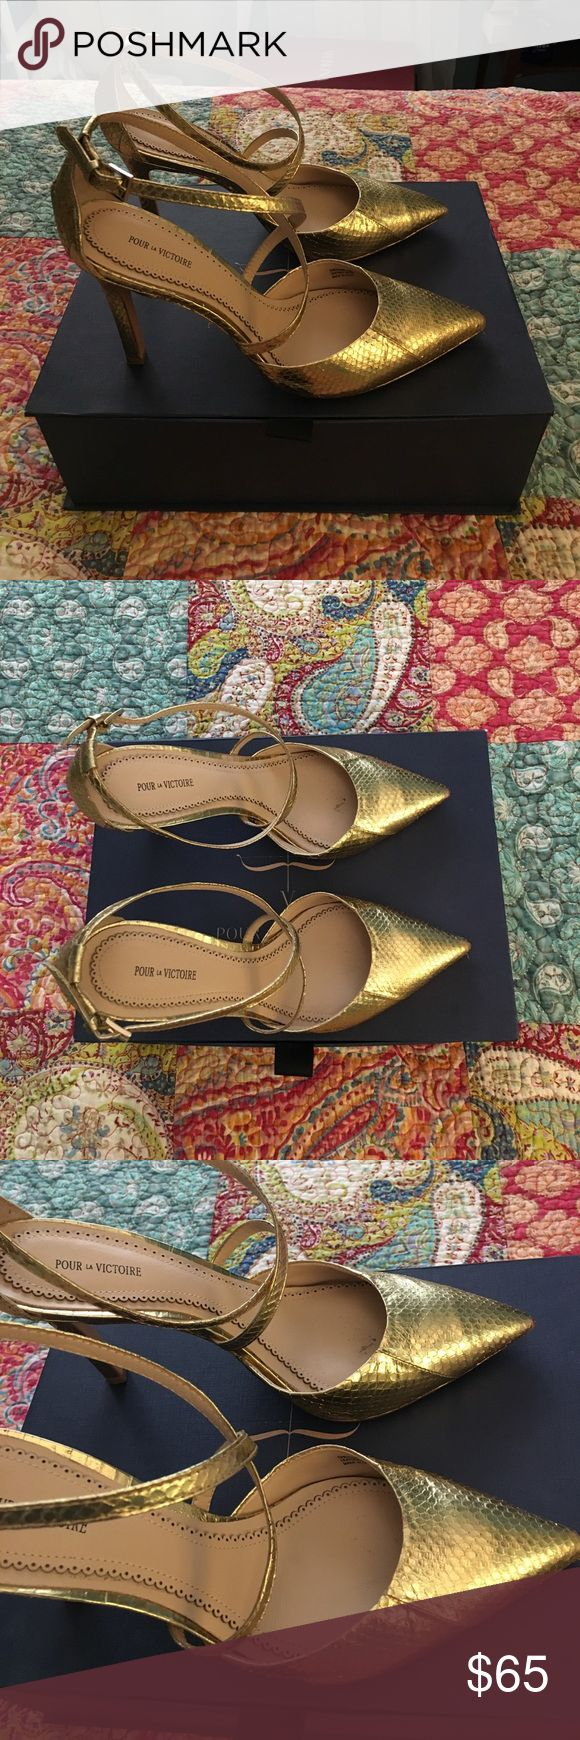 Pour La Victoire Shoes Gold snakeskin Cheyenne shoes, size 9.5 These were bought a few years ago for New Year's Eve and they've only been worn a handful of times.  Still in excellent condition, looking for a new loving home, just in time for the holidays! Crisscross straps and a point toe Will come with original box and an extra set of heel stoppers. Pour La Victoire Shoes Heels